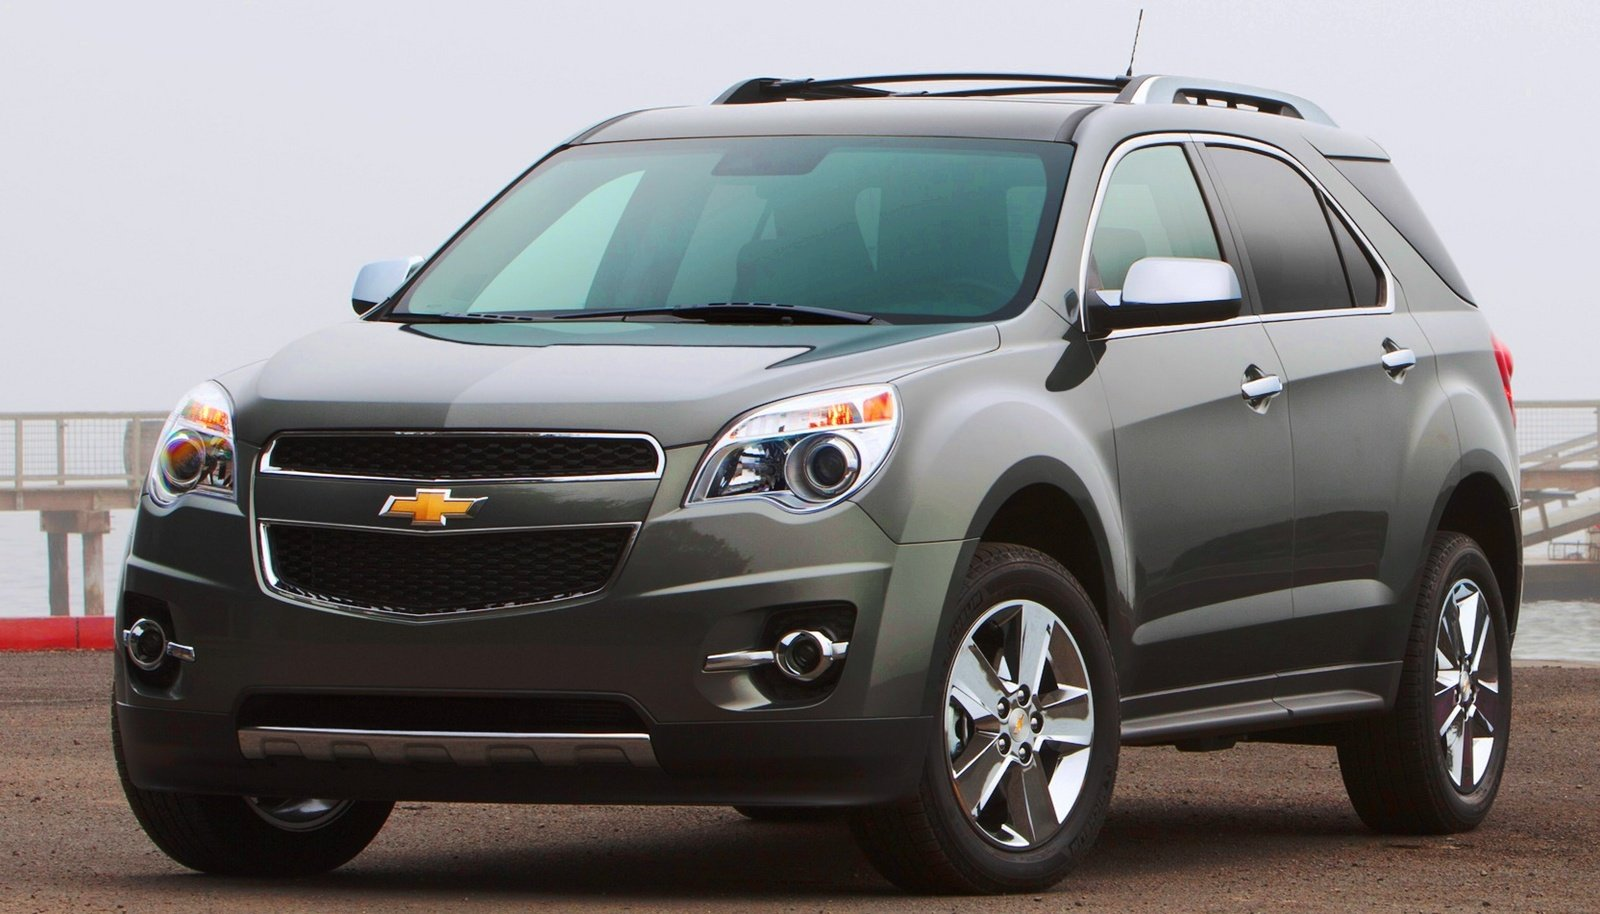 2014 chevrolet equinox picture 515567 car review top speed. Black Bedroom Furniture Sets. Home Design Ideas